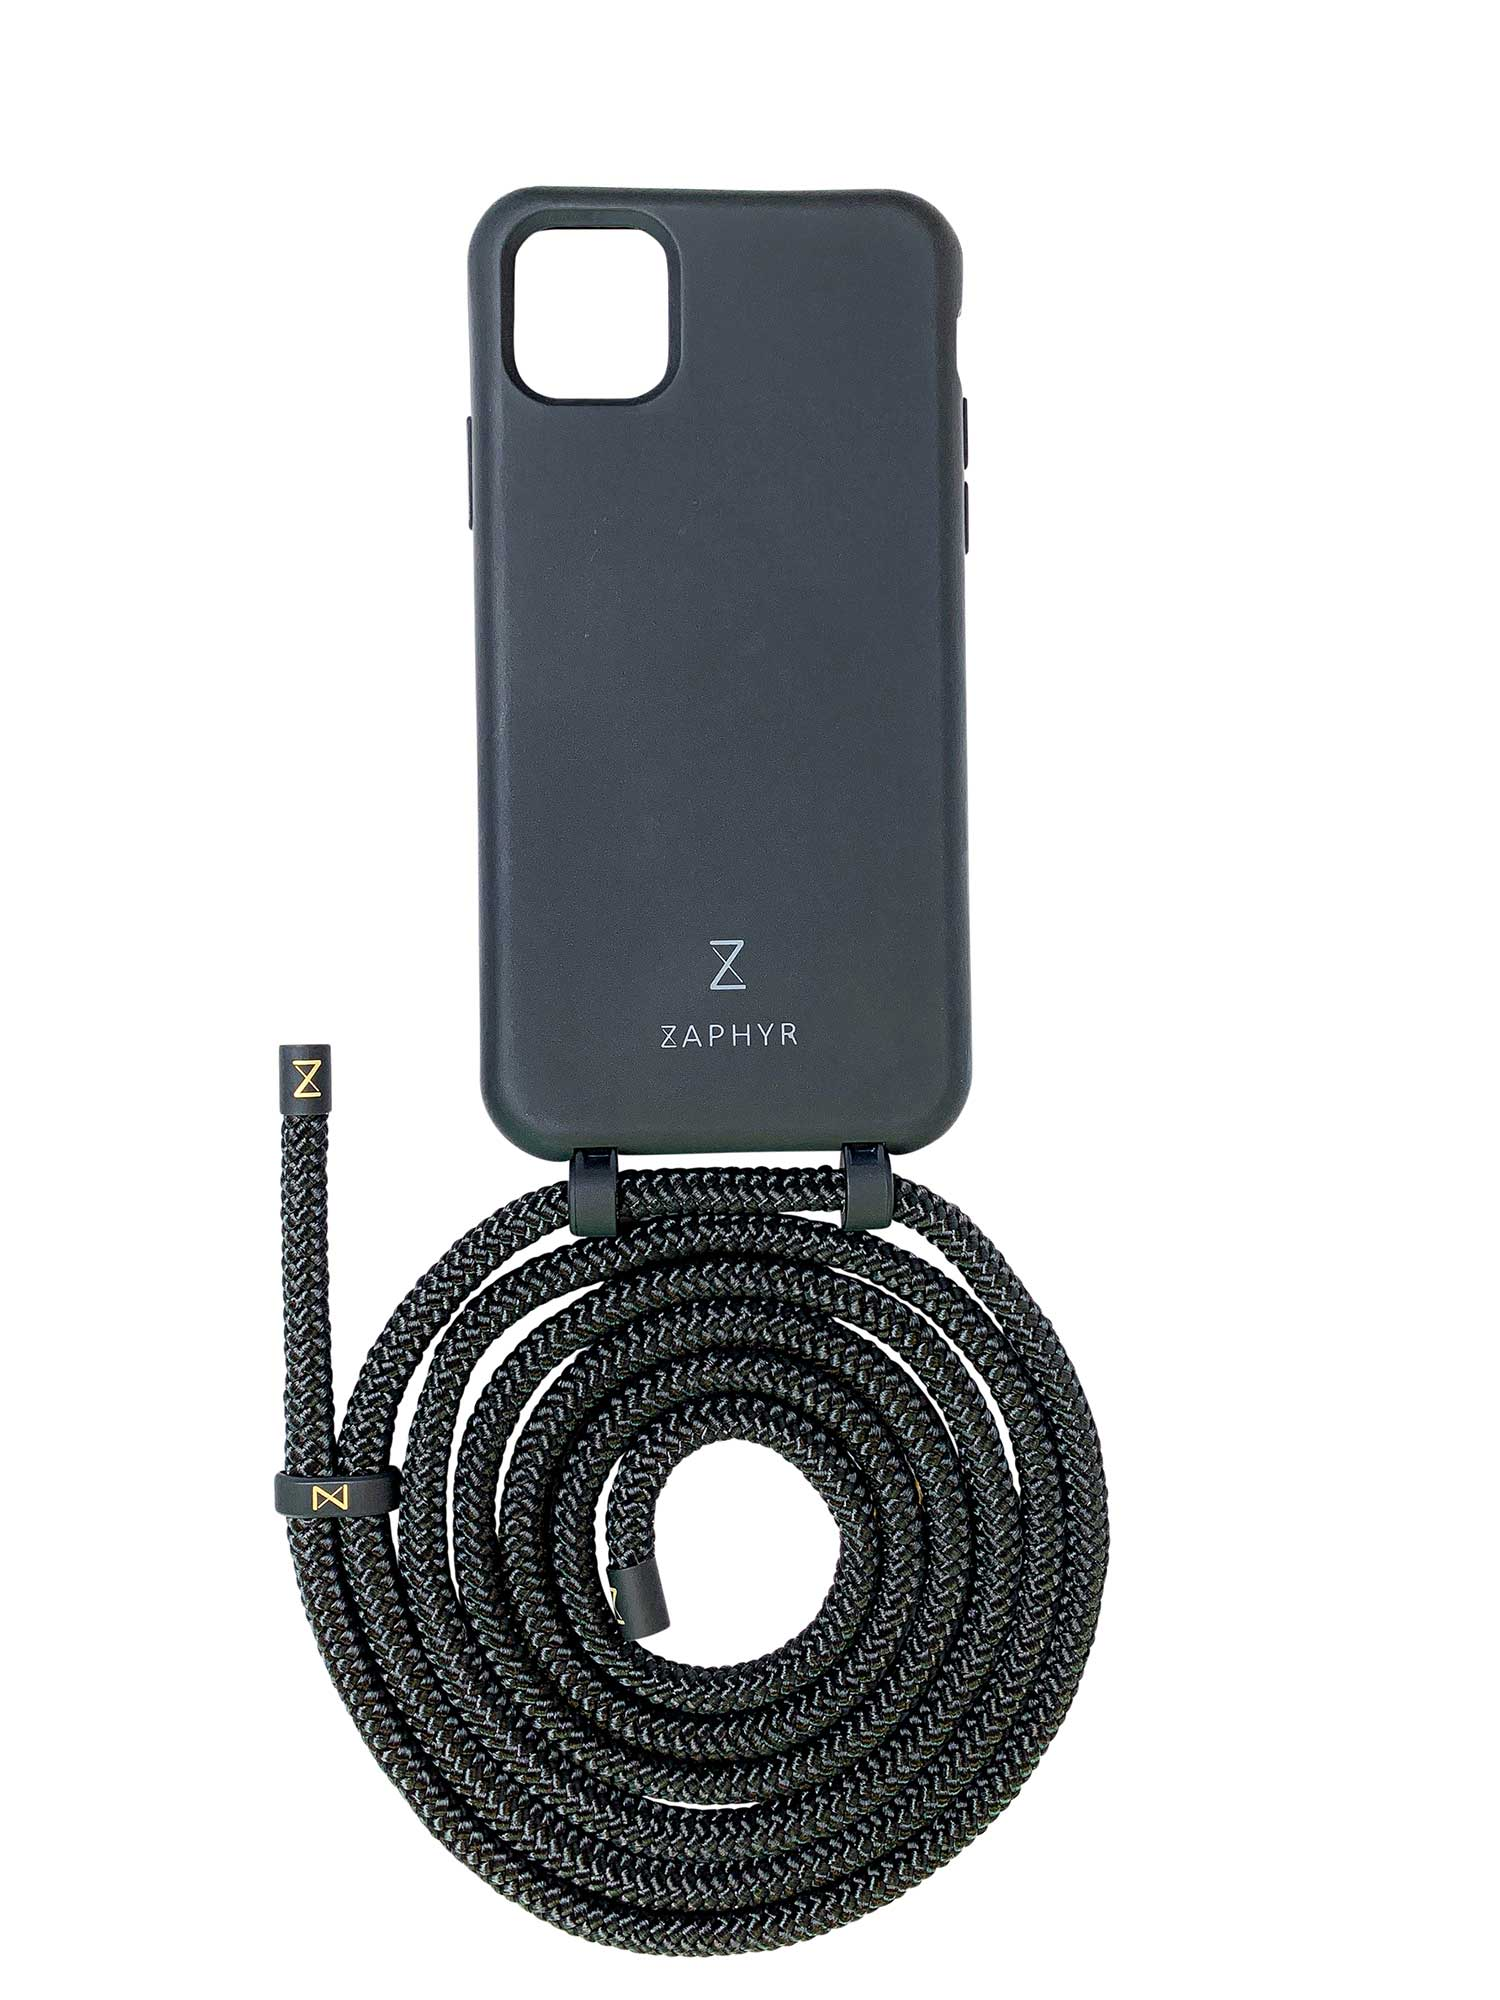 Zaphyr crossbody phone case for Apple iPhone12, iPhone 12 Pro, iPhone 12 mini, iPhone 12 Pro Max in black with black cord  Edit alt text